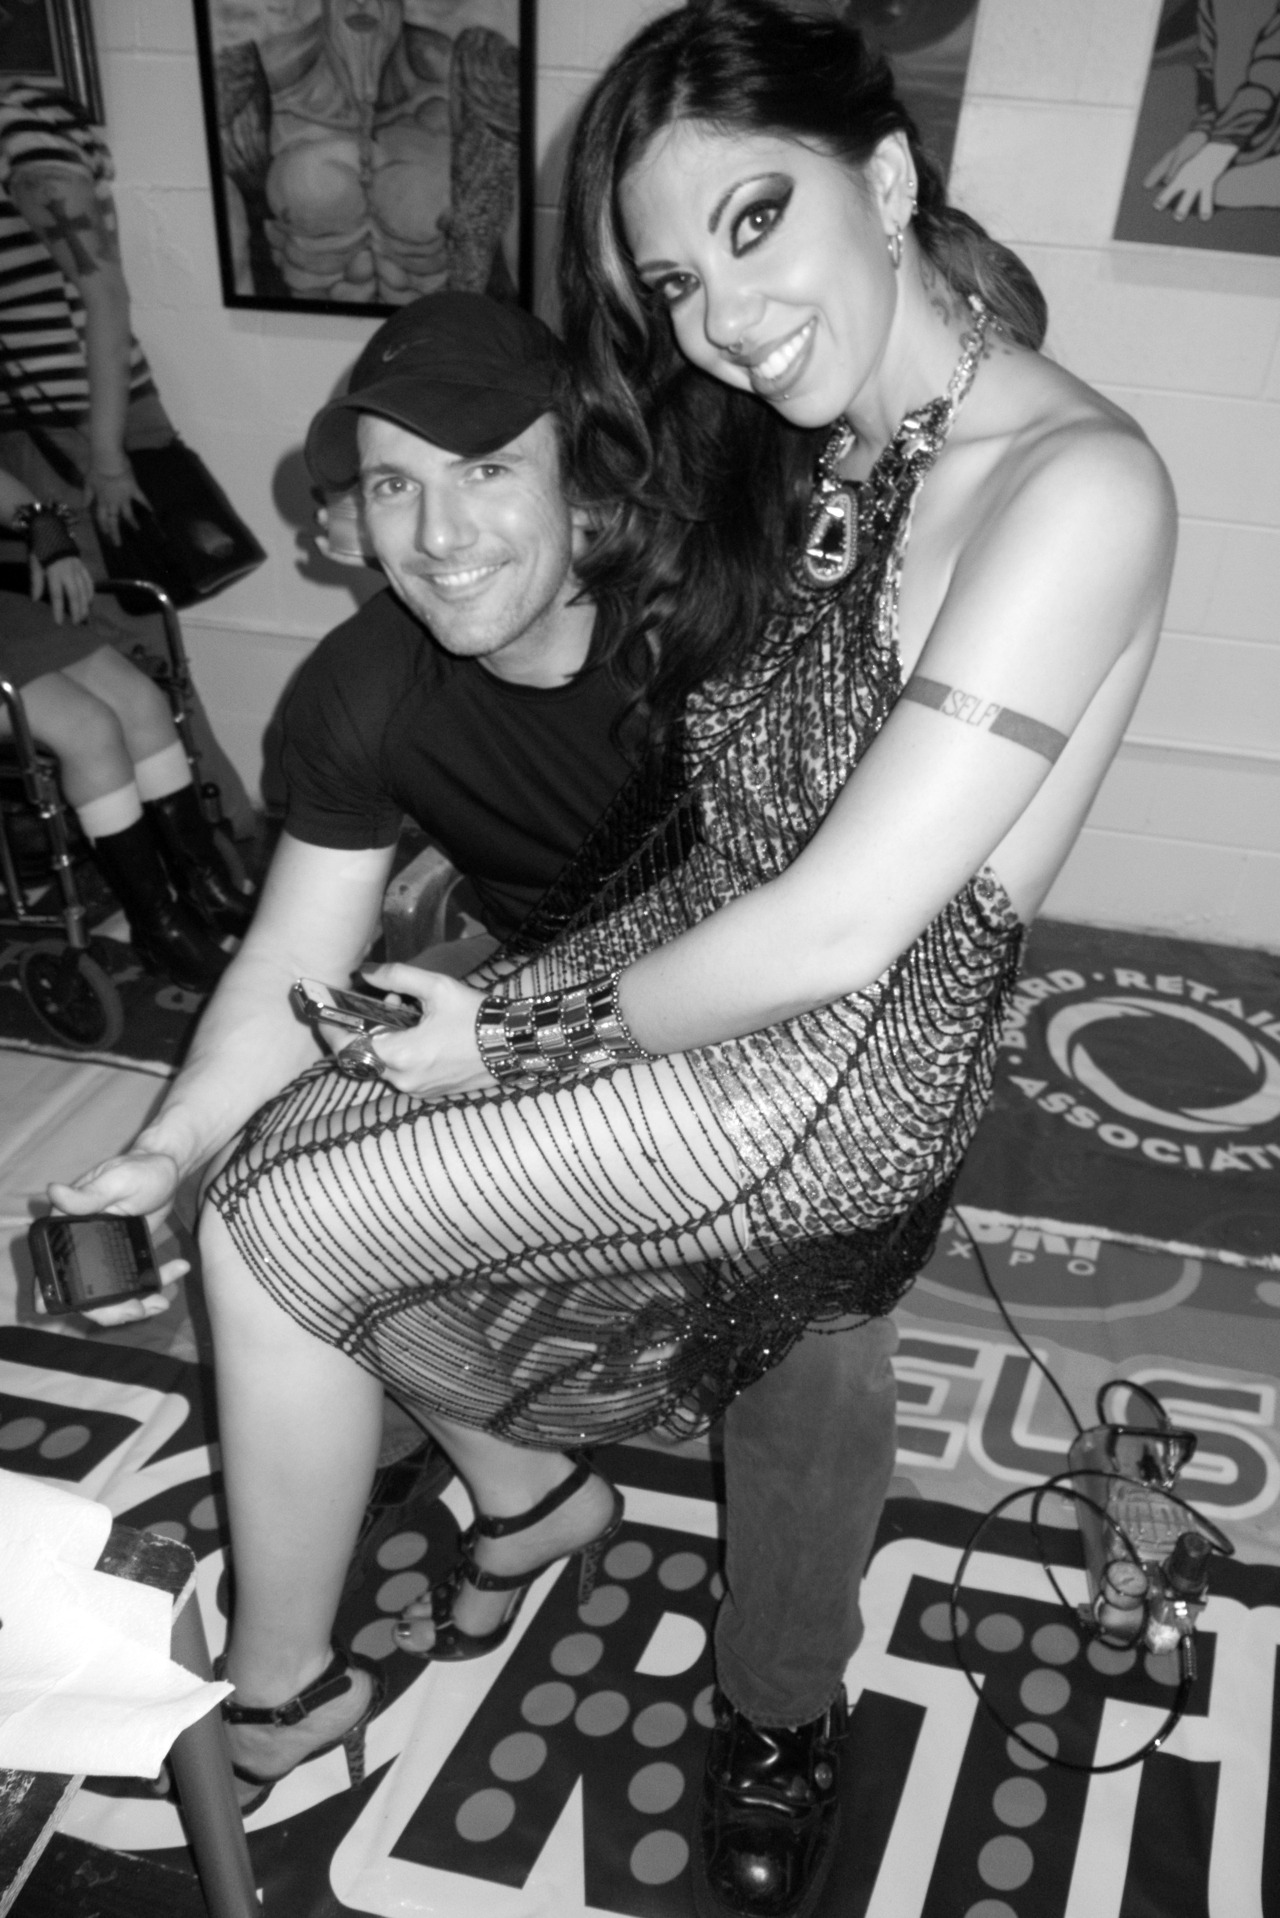 Satine Phoenix & David Mack. Photo ©2012 Coop.